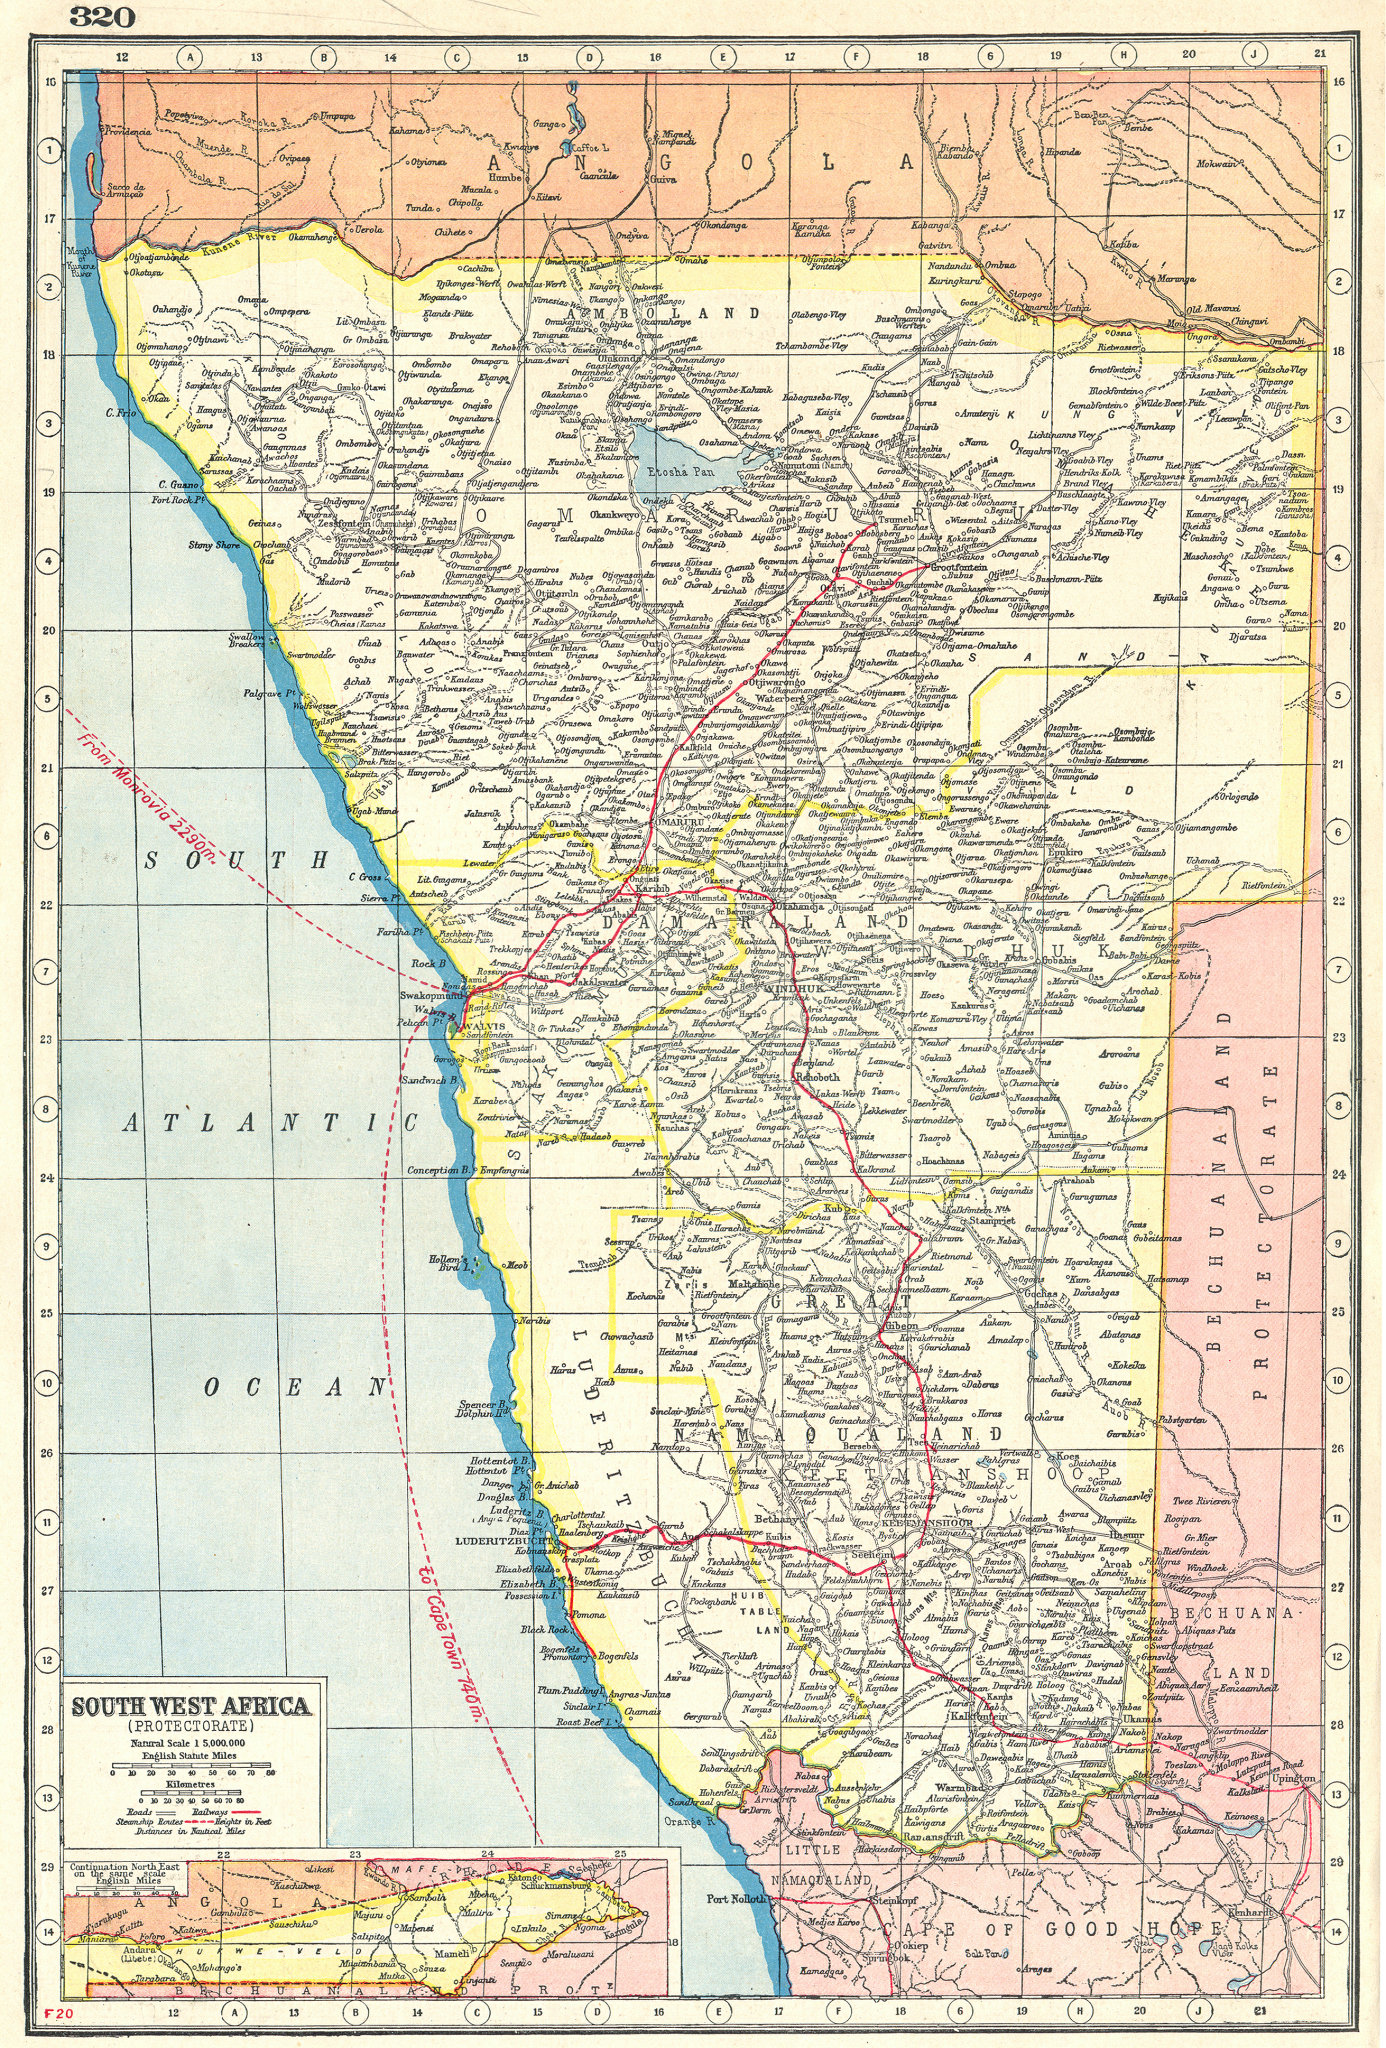 Associate Product NAMIBIA. South West Africa protectorate. HARMSWORTH 1920 old antique map chart